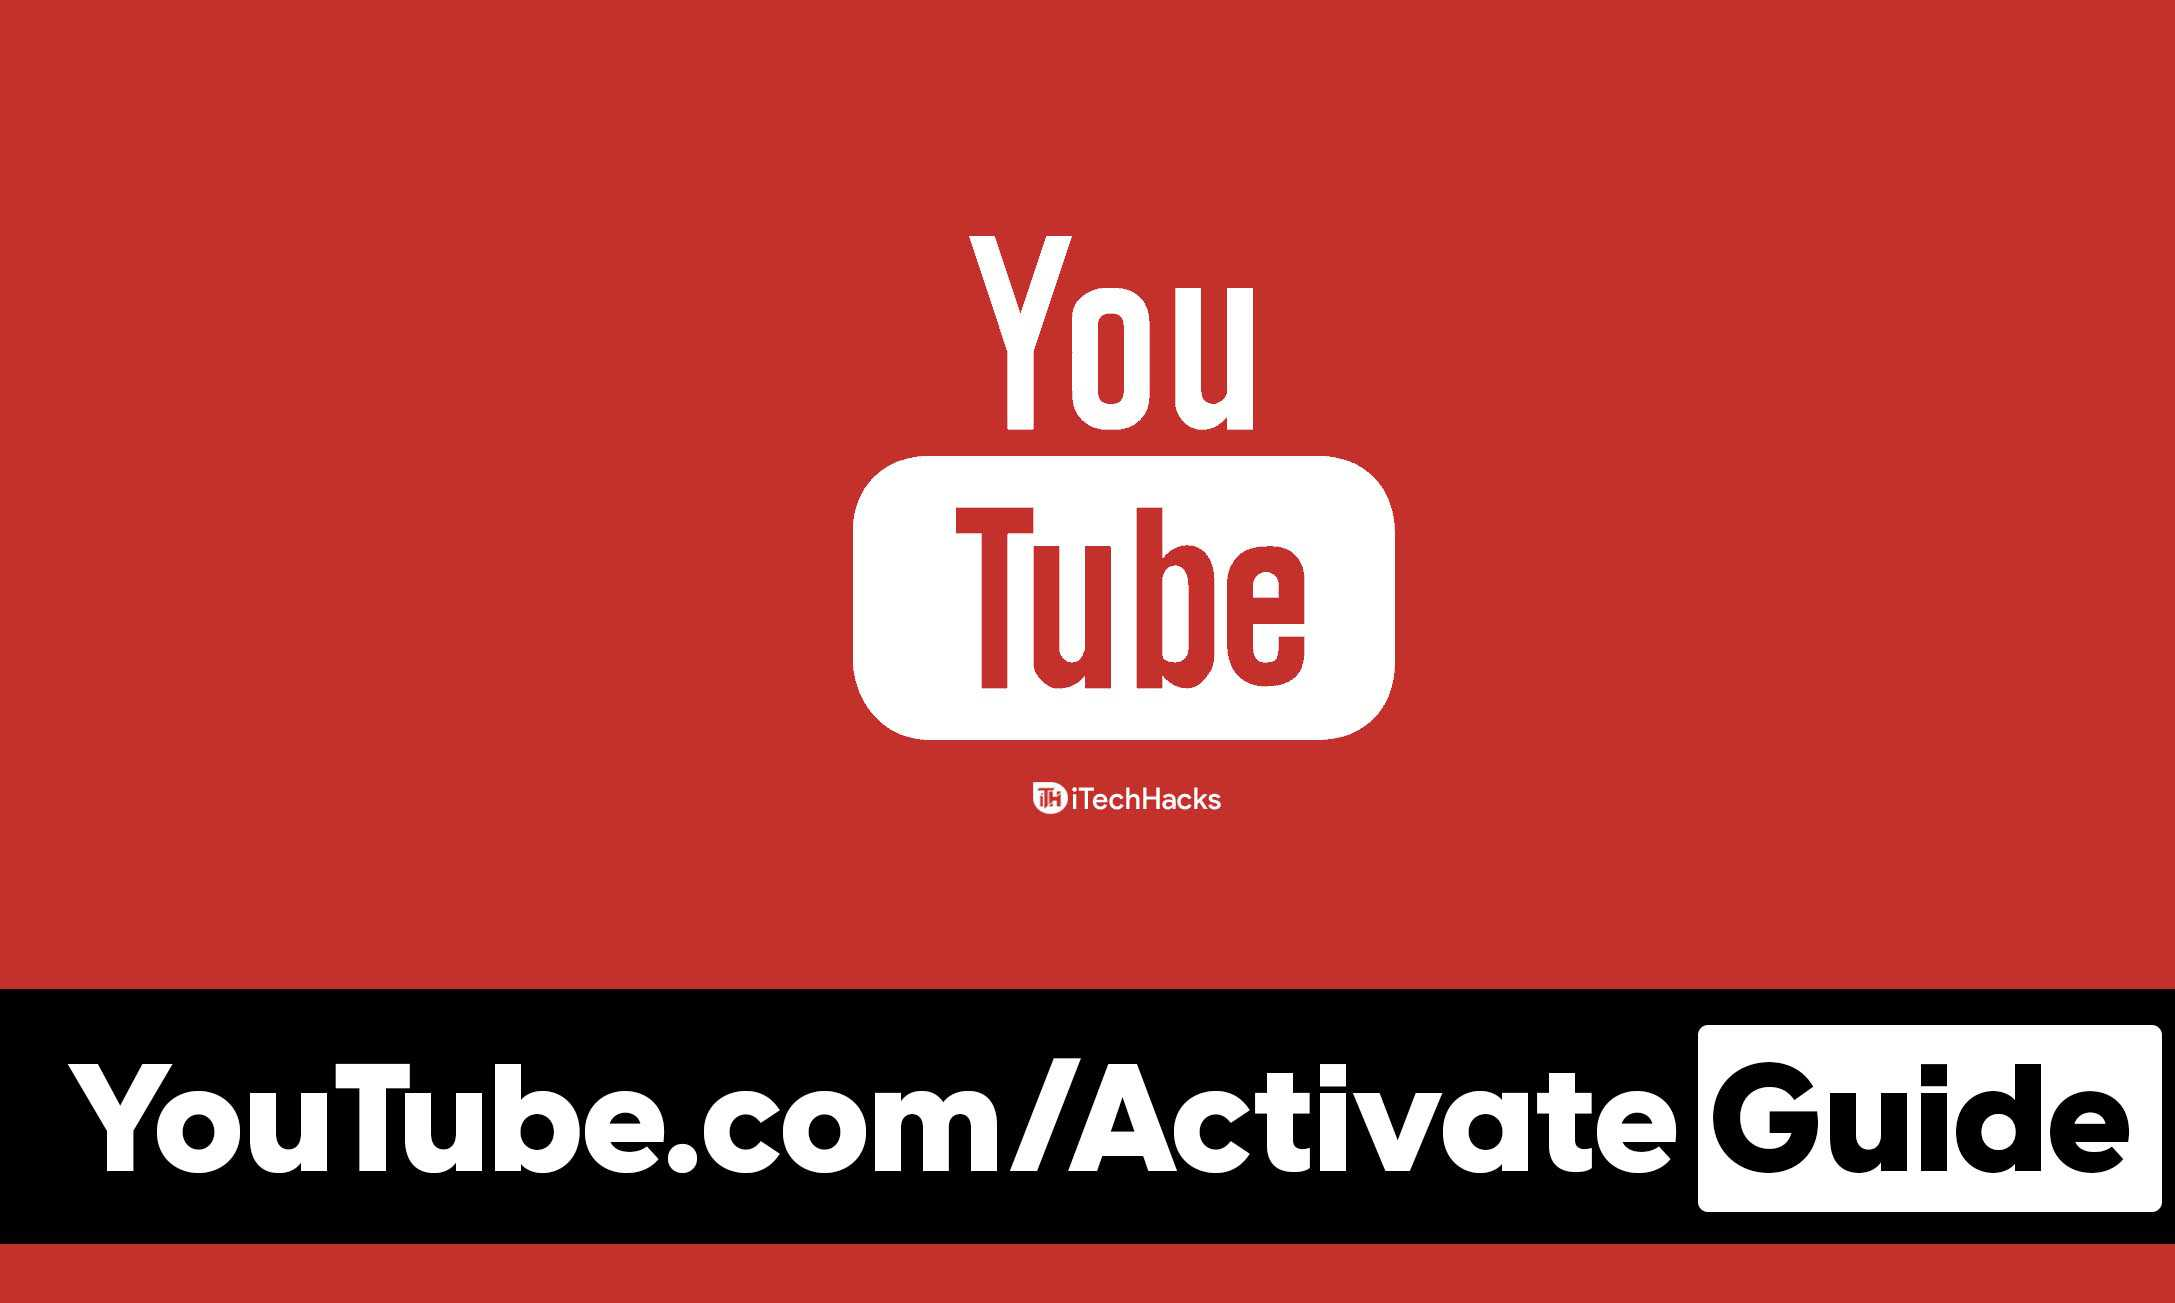 YouTube.com/Activate 2021: Guide to YouTube Activation